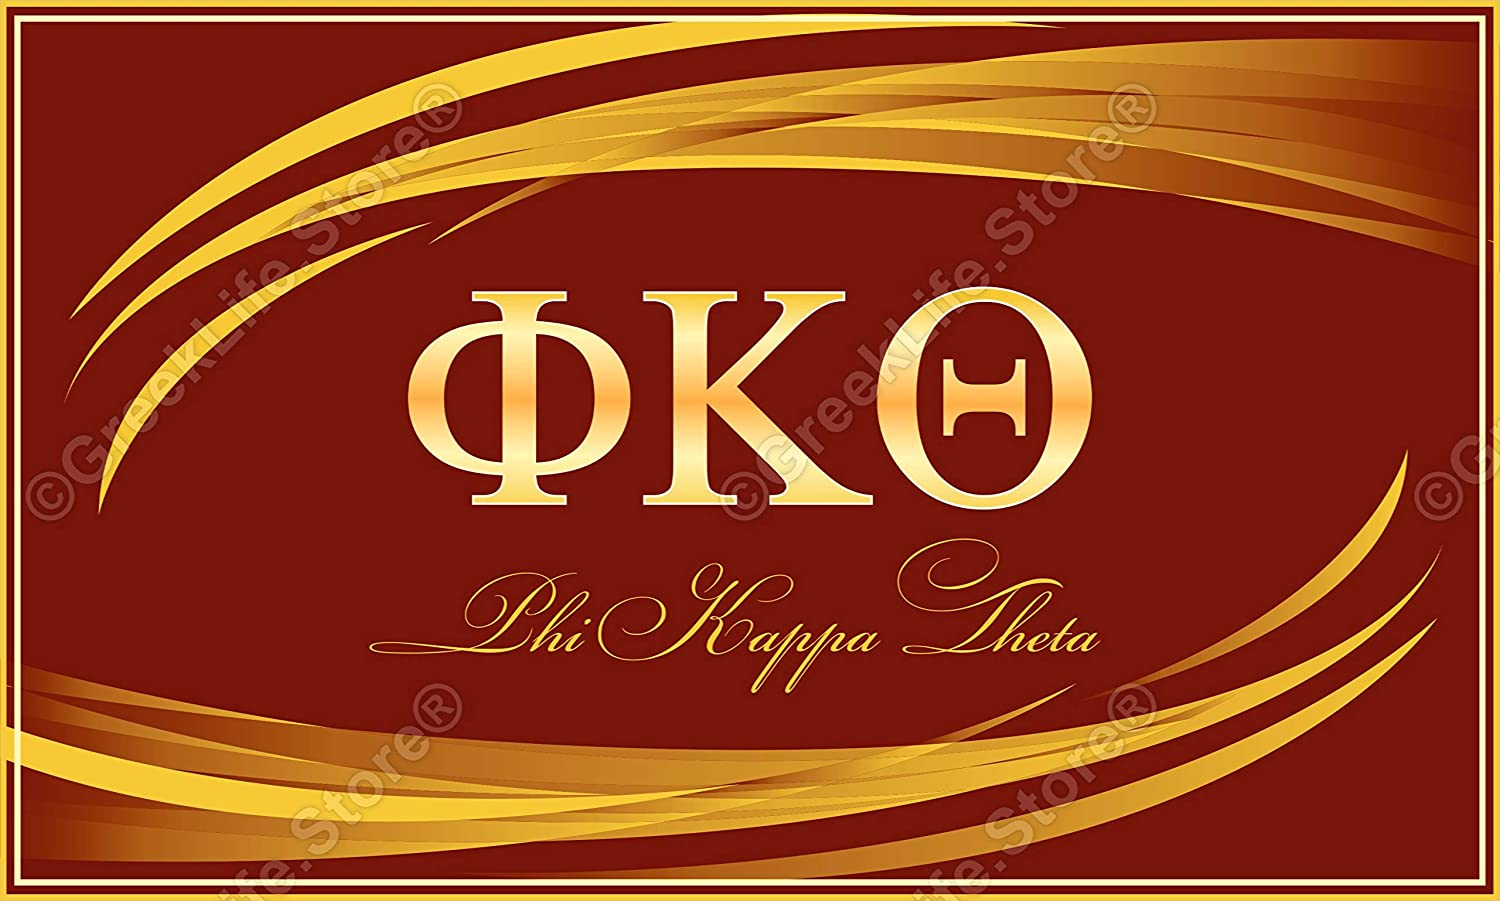 Apedes Phi Kappa Theta Computer Tablet Decal Sticker 3x5 inches